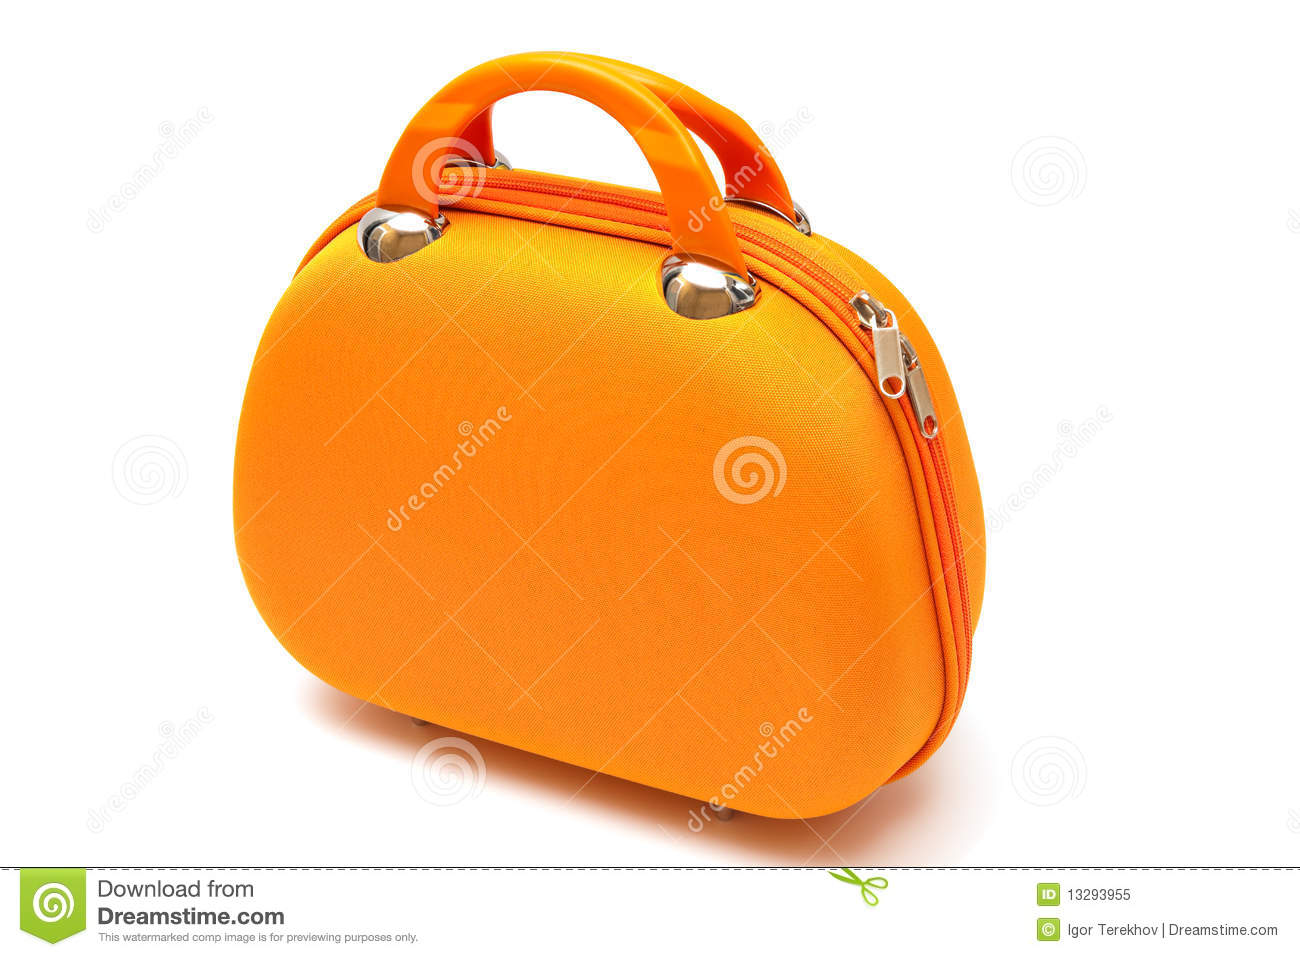 Royalty Free Stock Photo: Orange handbag